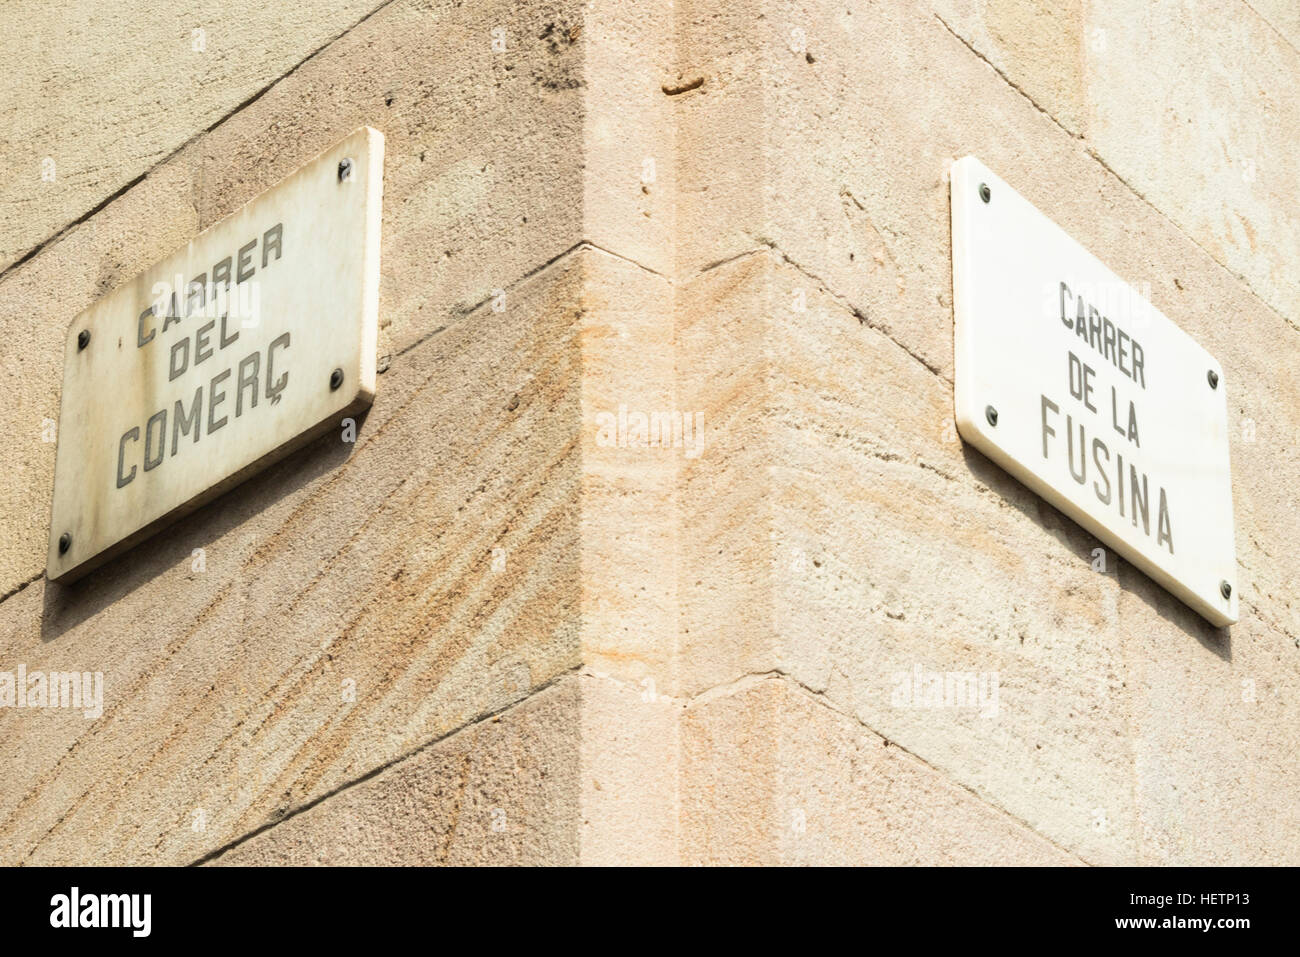 Detail of street signs with name of comerc street and fusina street on a stone facade of a building in Born, Barcelona, Stock Photo